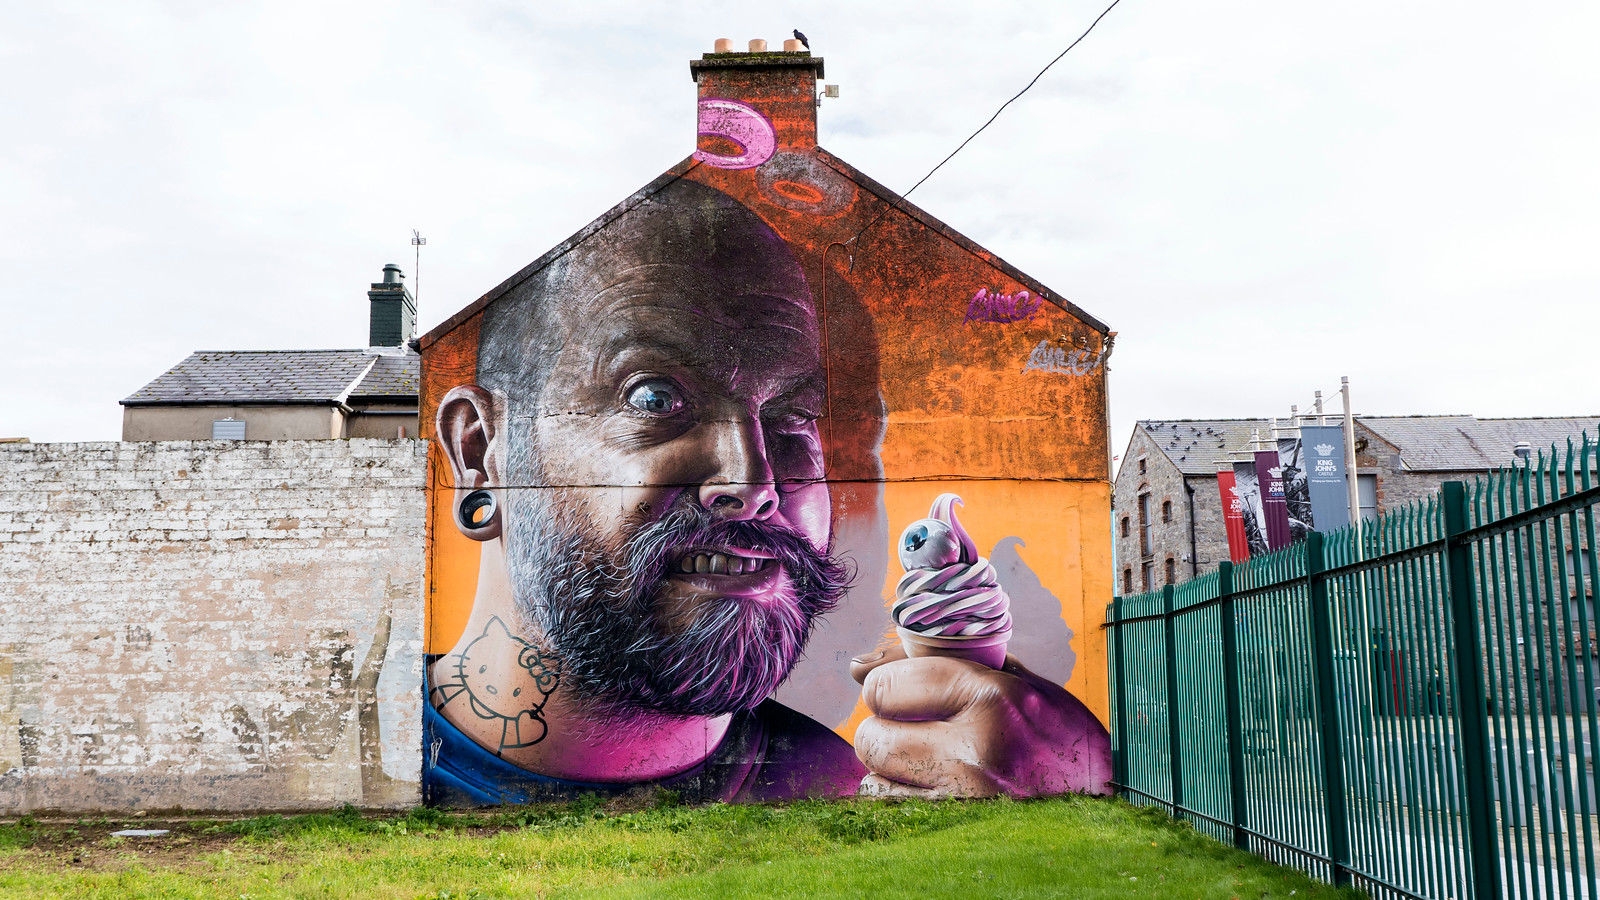 Street art in Limerick - Man with ice cream cone and Hello Kitty tattoo - Awesome Things to Do in Limerick in Half a Day